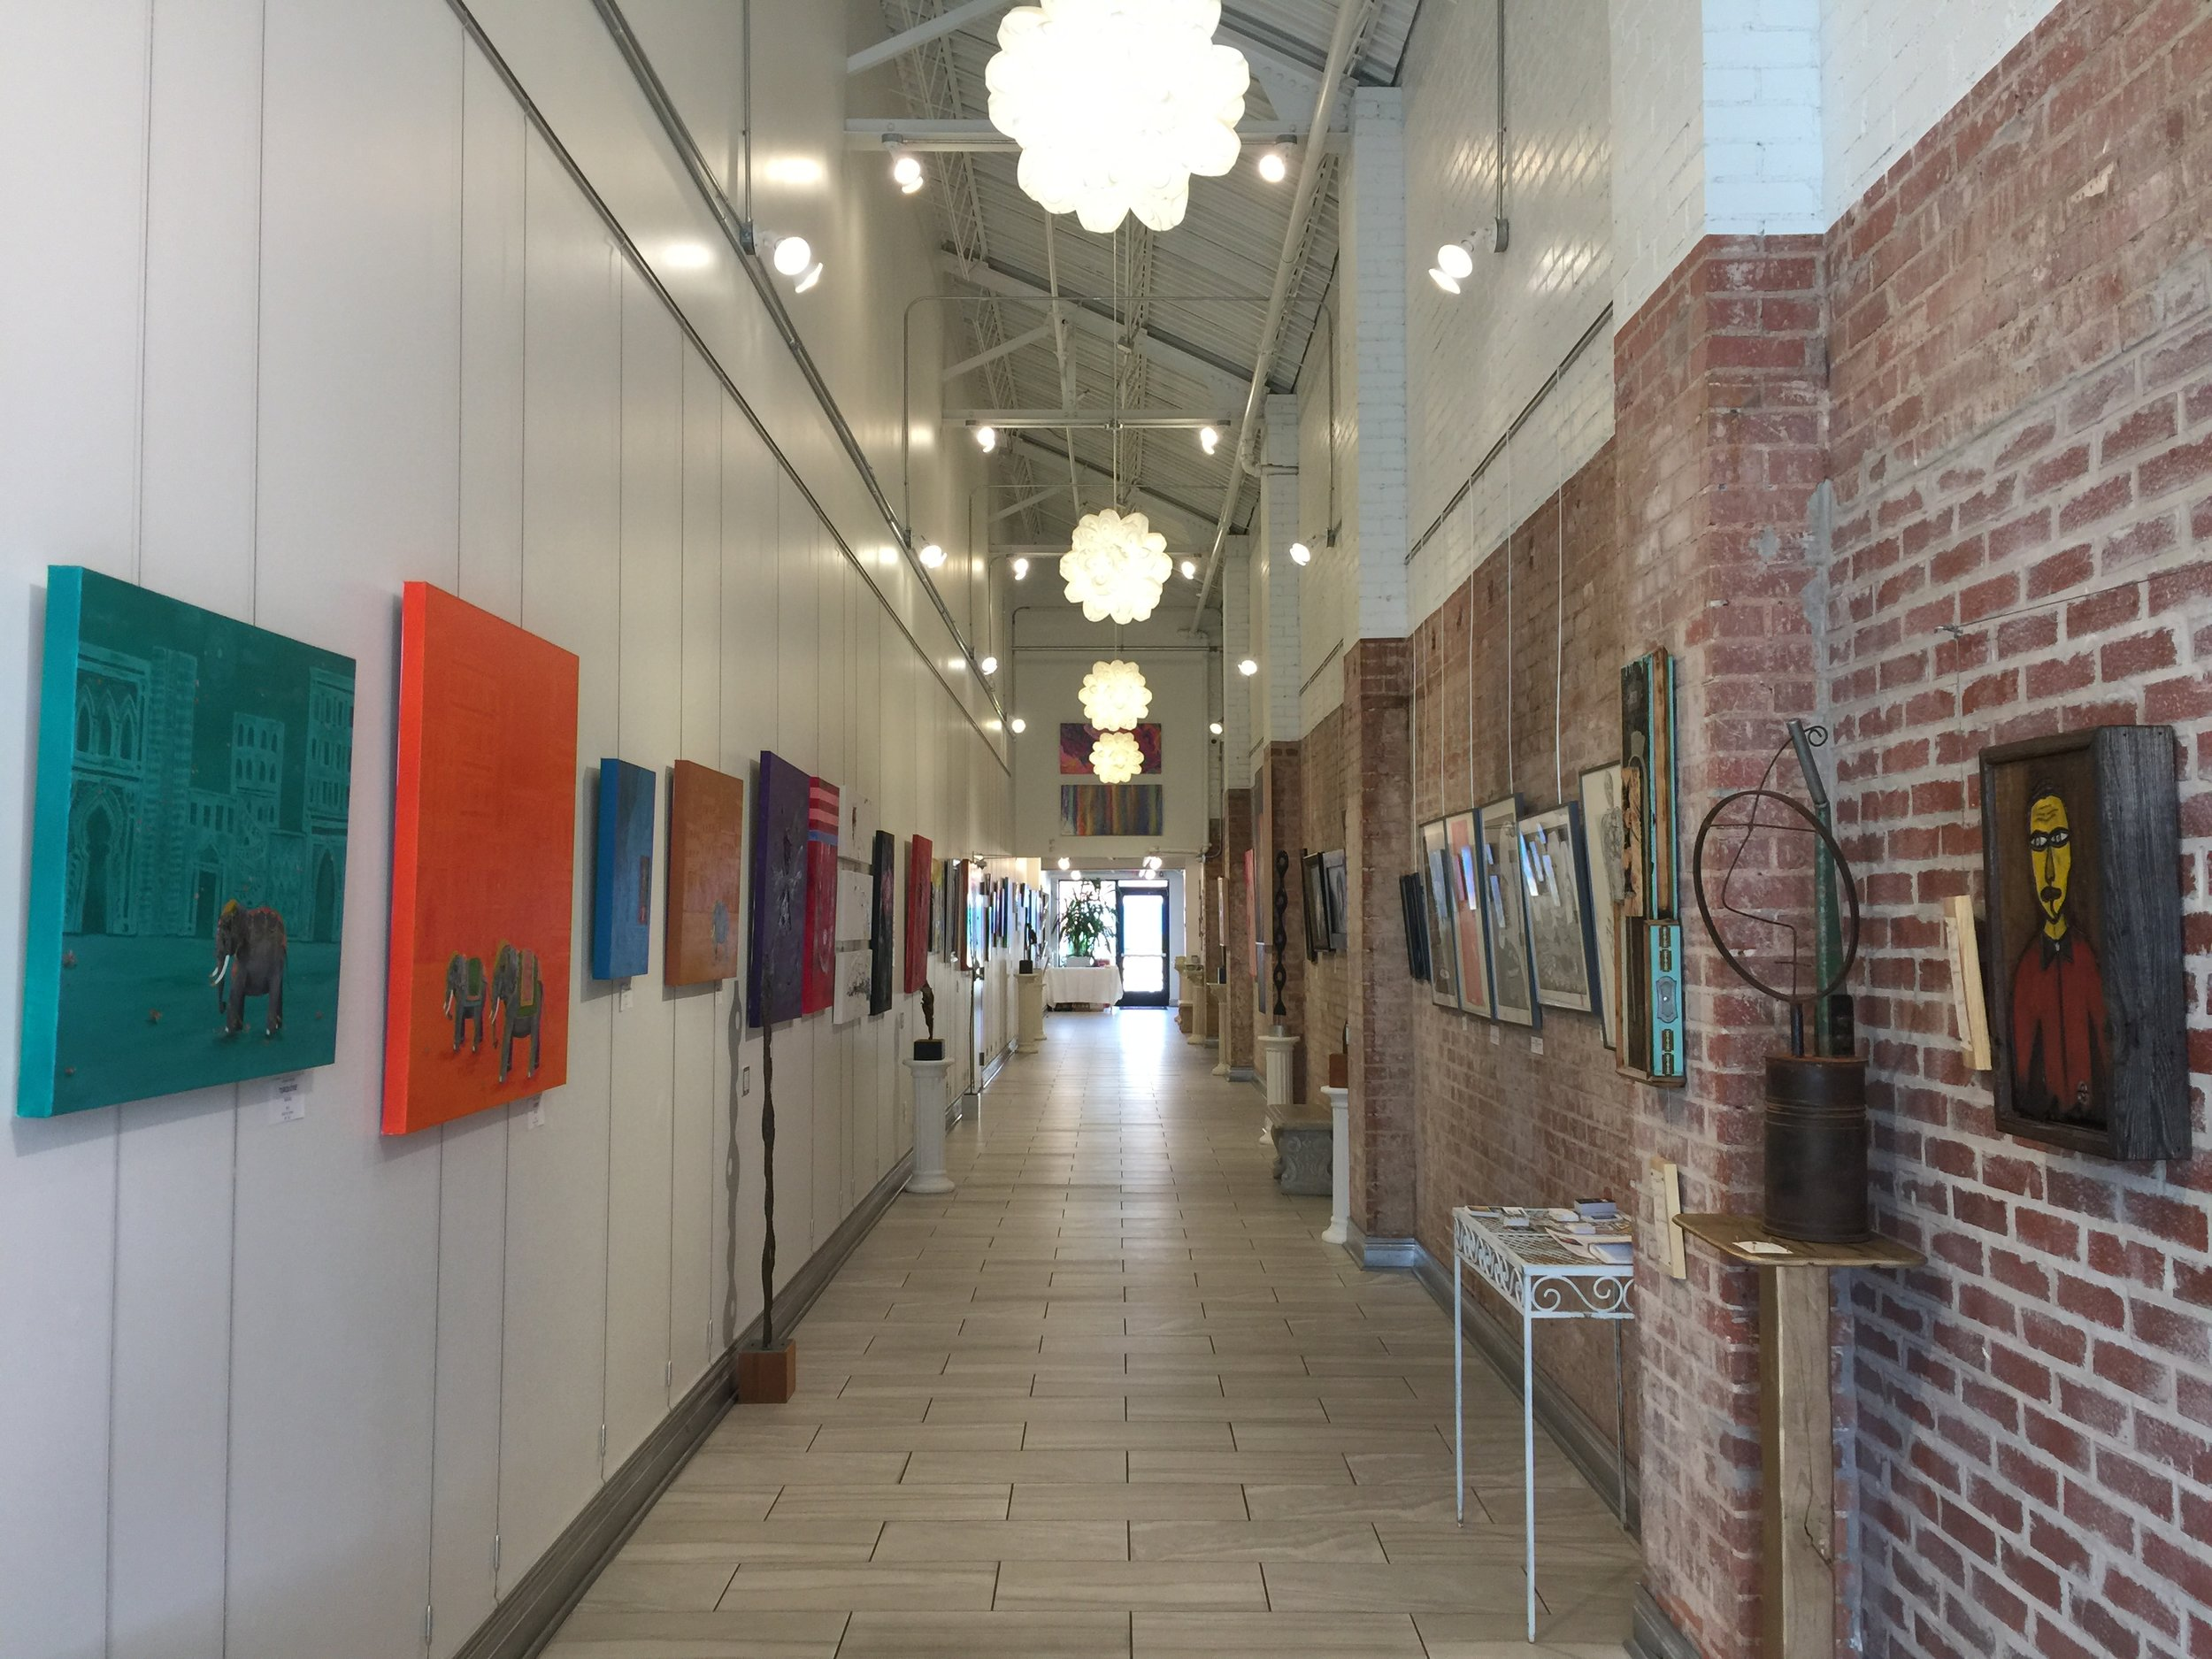 Installation view facing North, with work by adrienne wright on the left and Gary Locke on the right